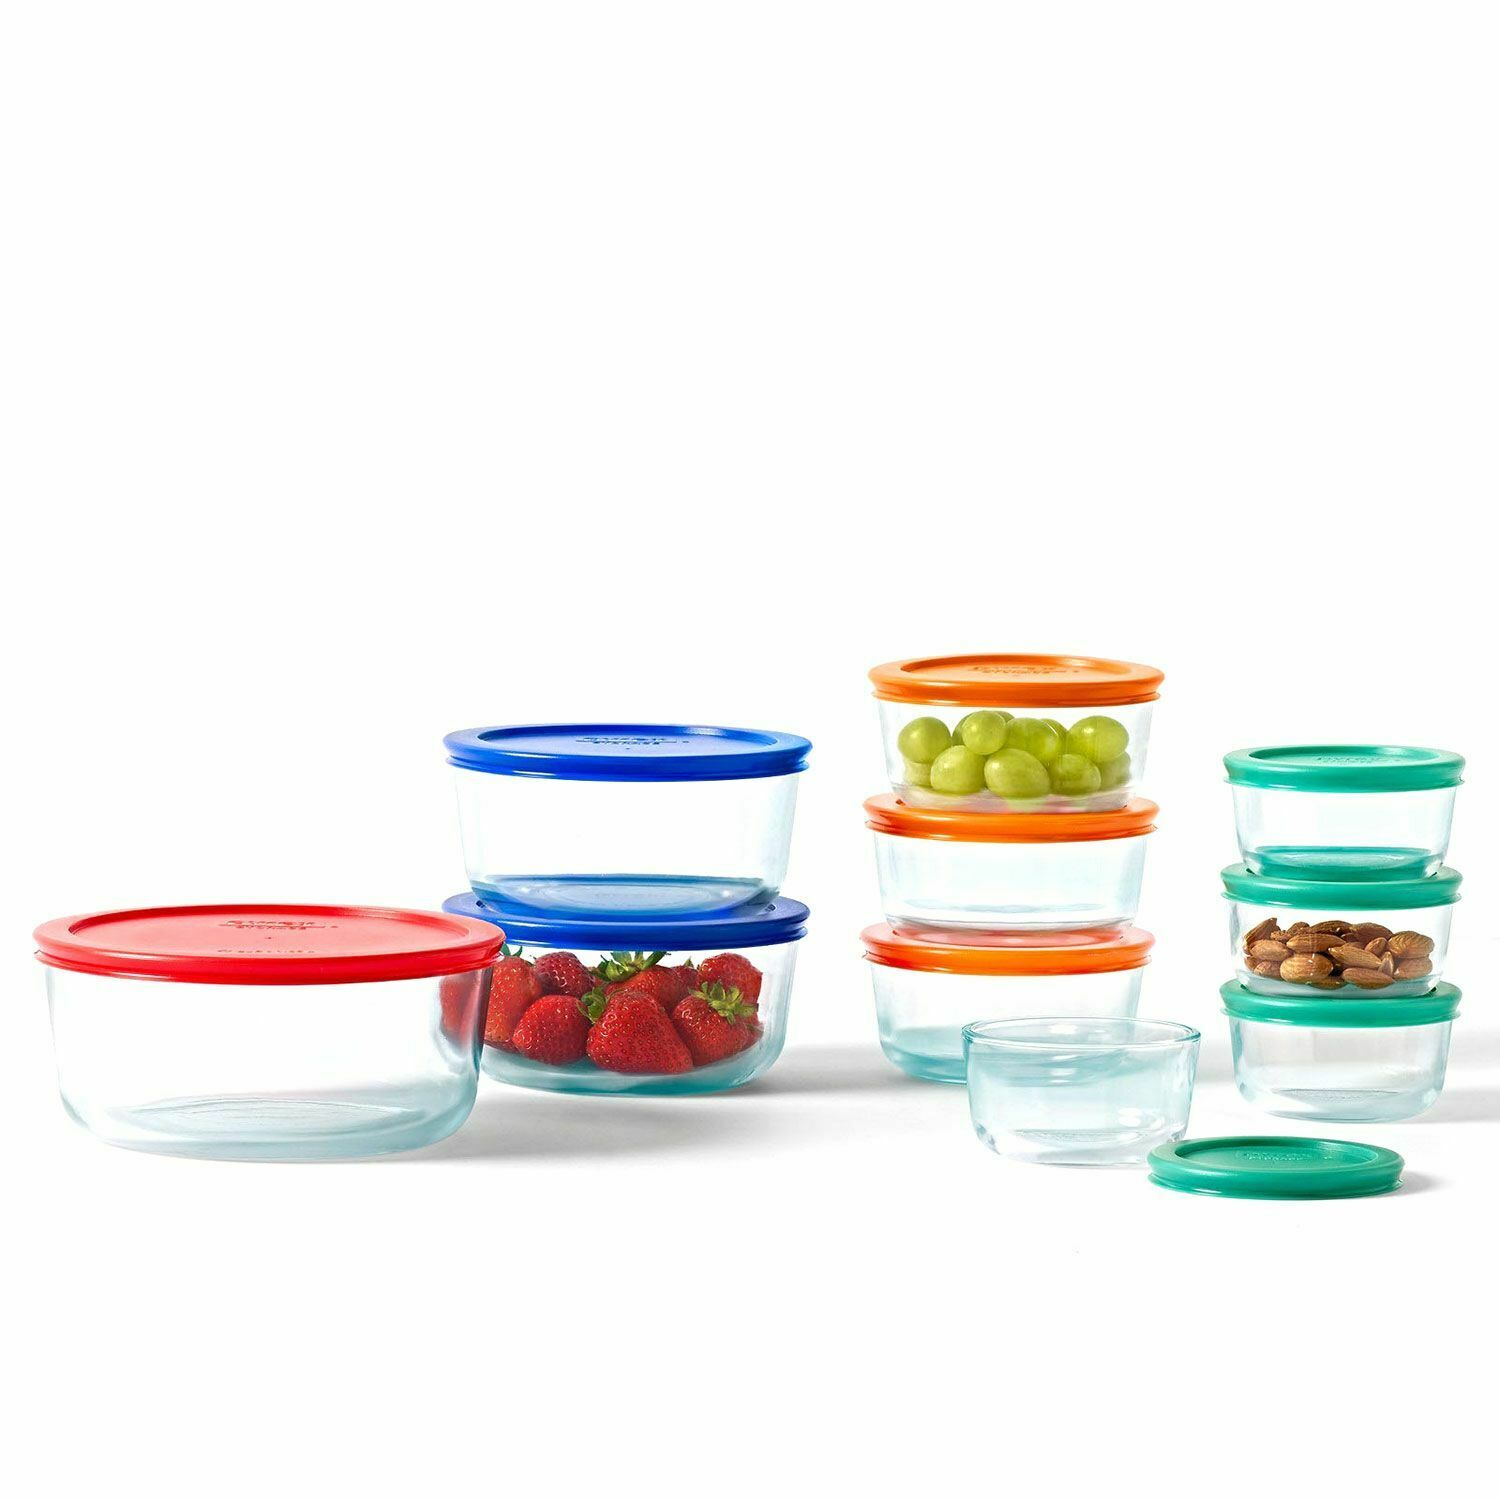 Pyrex 20 piece Glass Food Storage Containers Set Bowls with Lids 1